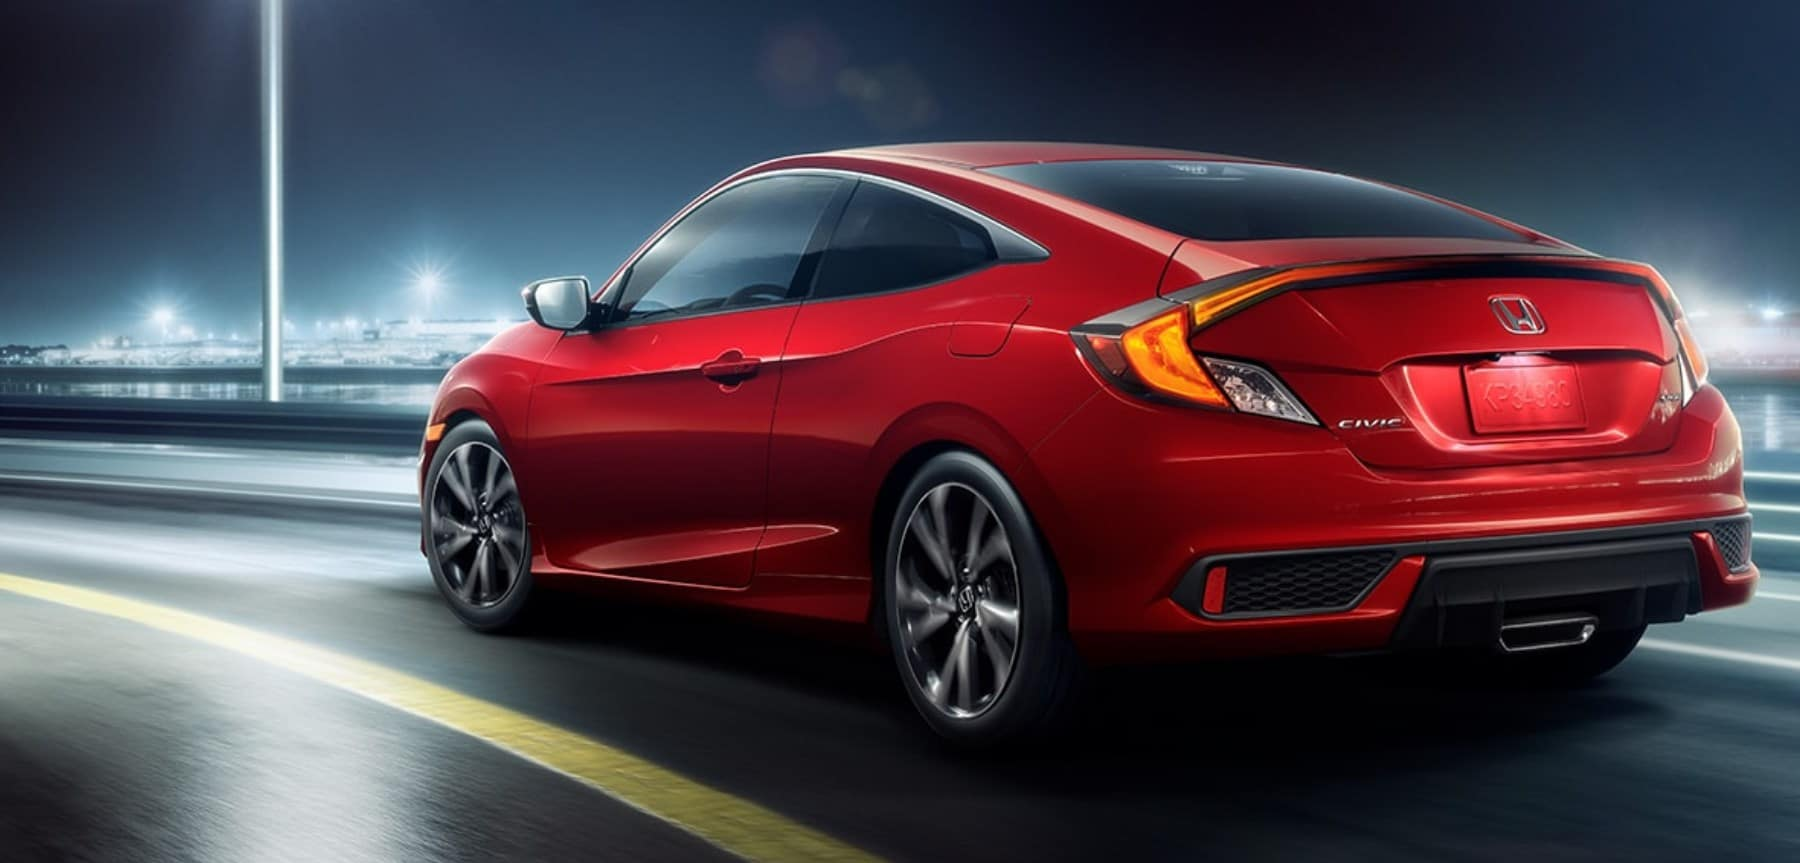 2020 Honda Civic Rear View Red Exterior Picture